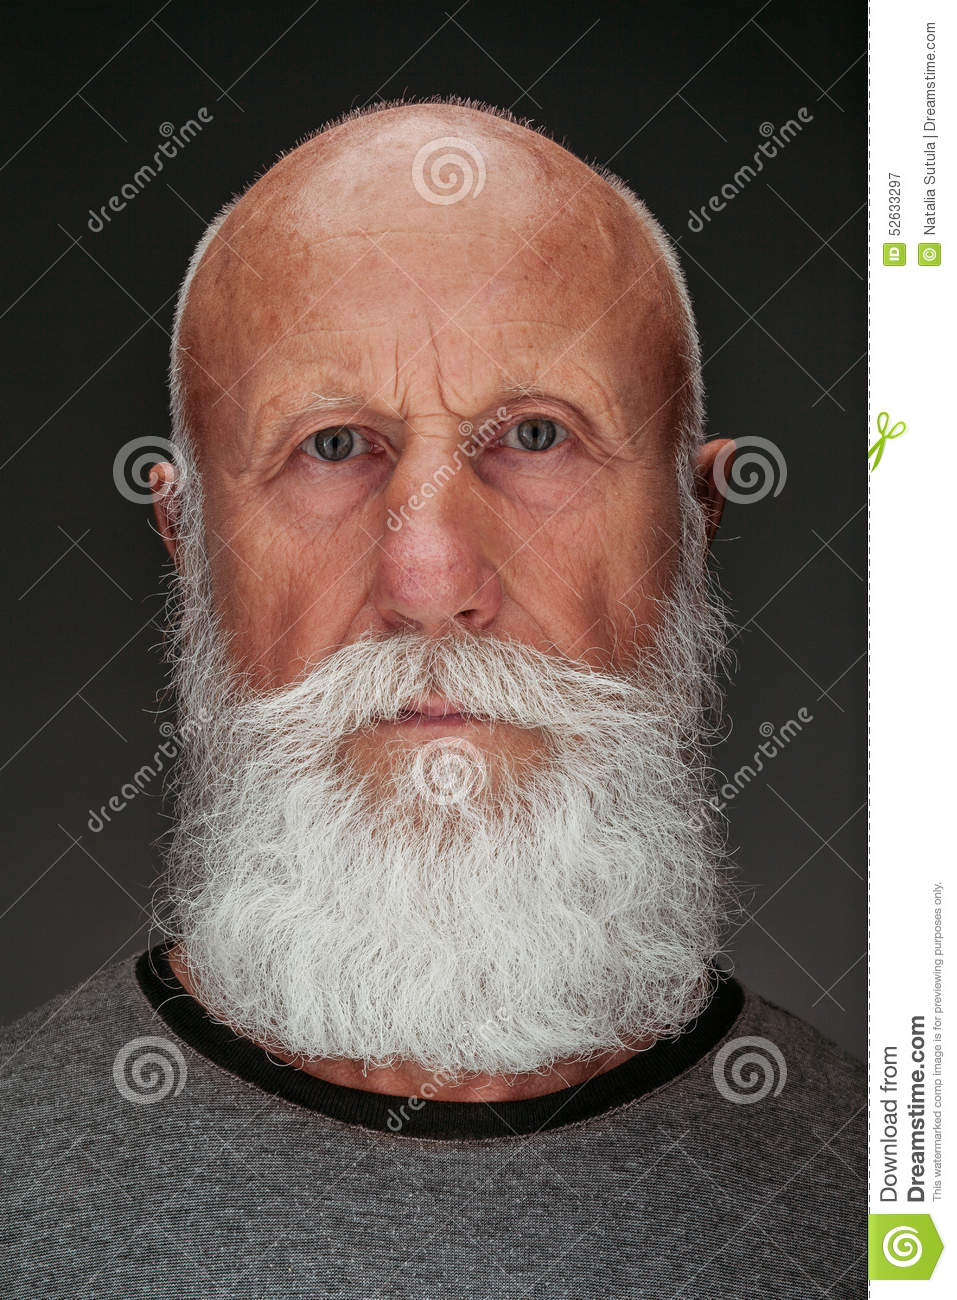 Admirable Old Man With A Long White Beard Stock Photo Image 52633297 Short Hairstyles For Black Women Fulllsitofus